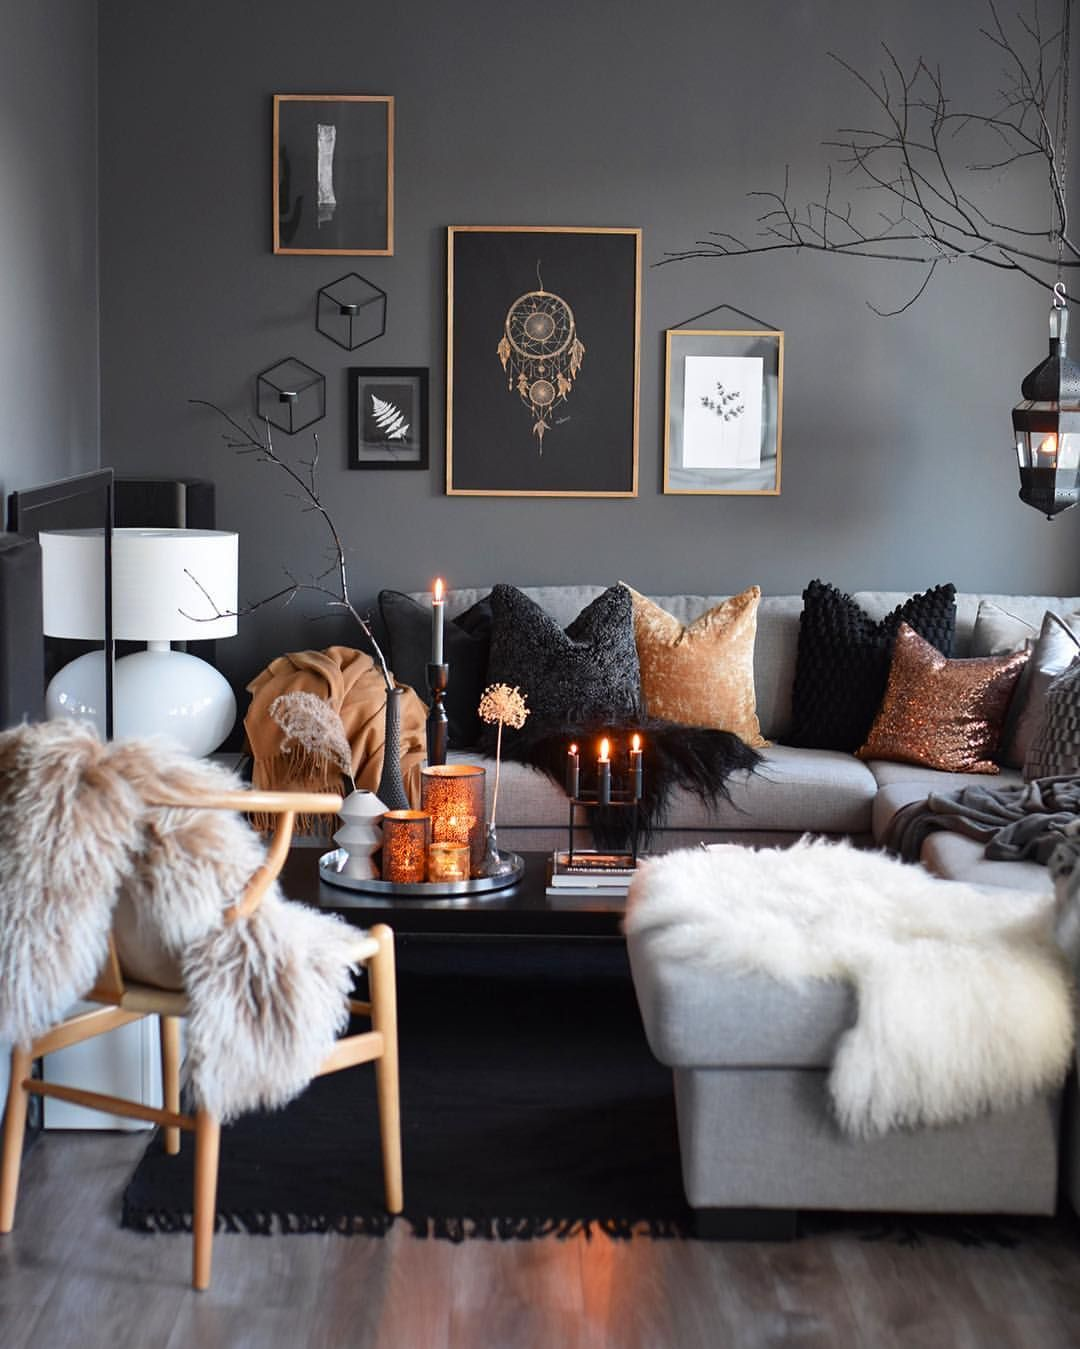 Maren Baxter On Instagram 1 Liviing Room 10 Styles What Number Is Your Favorite See 13 Mor Winter Living Room Decor Winter Living Room Living Room Designs #winter #living #room #decor